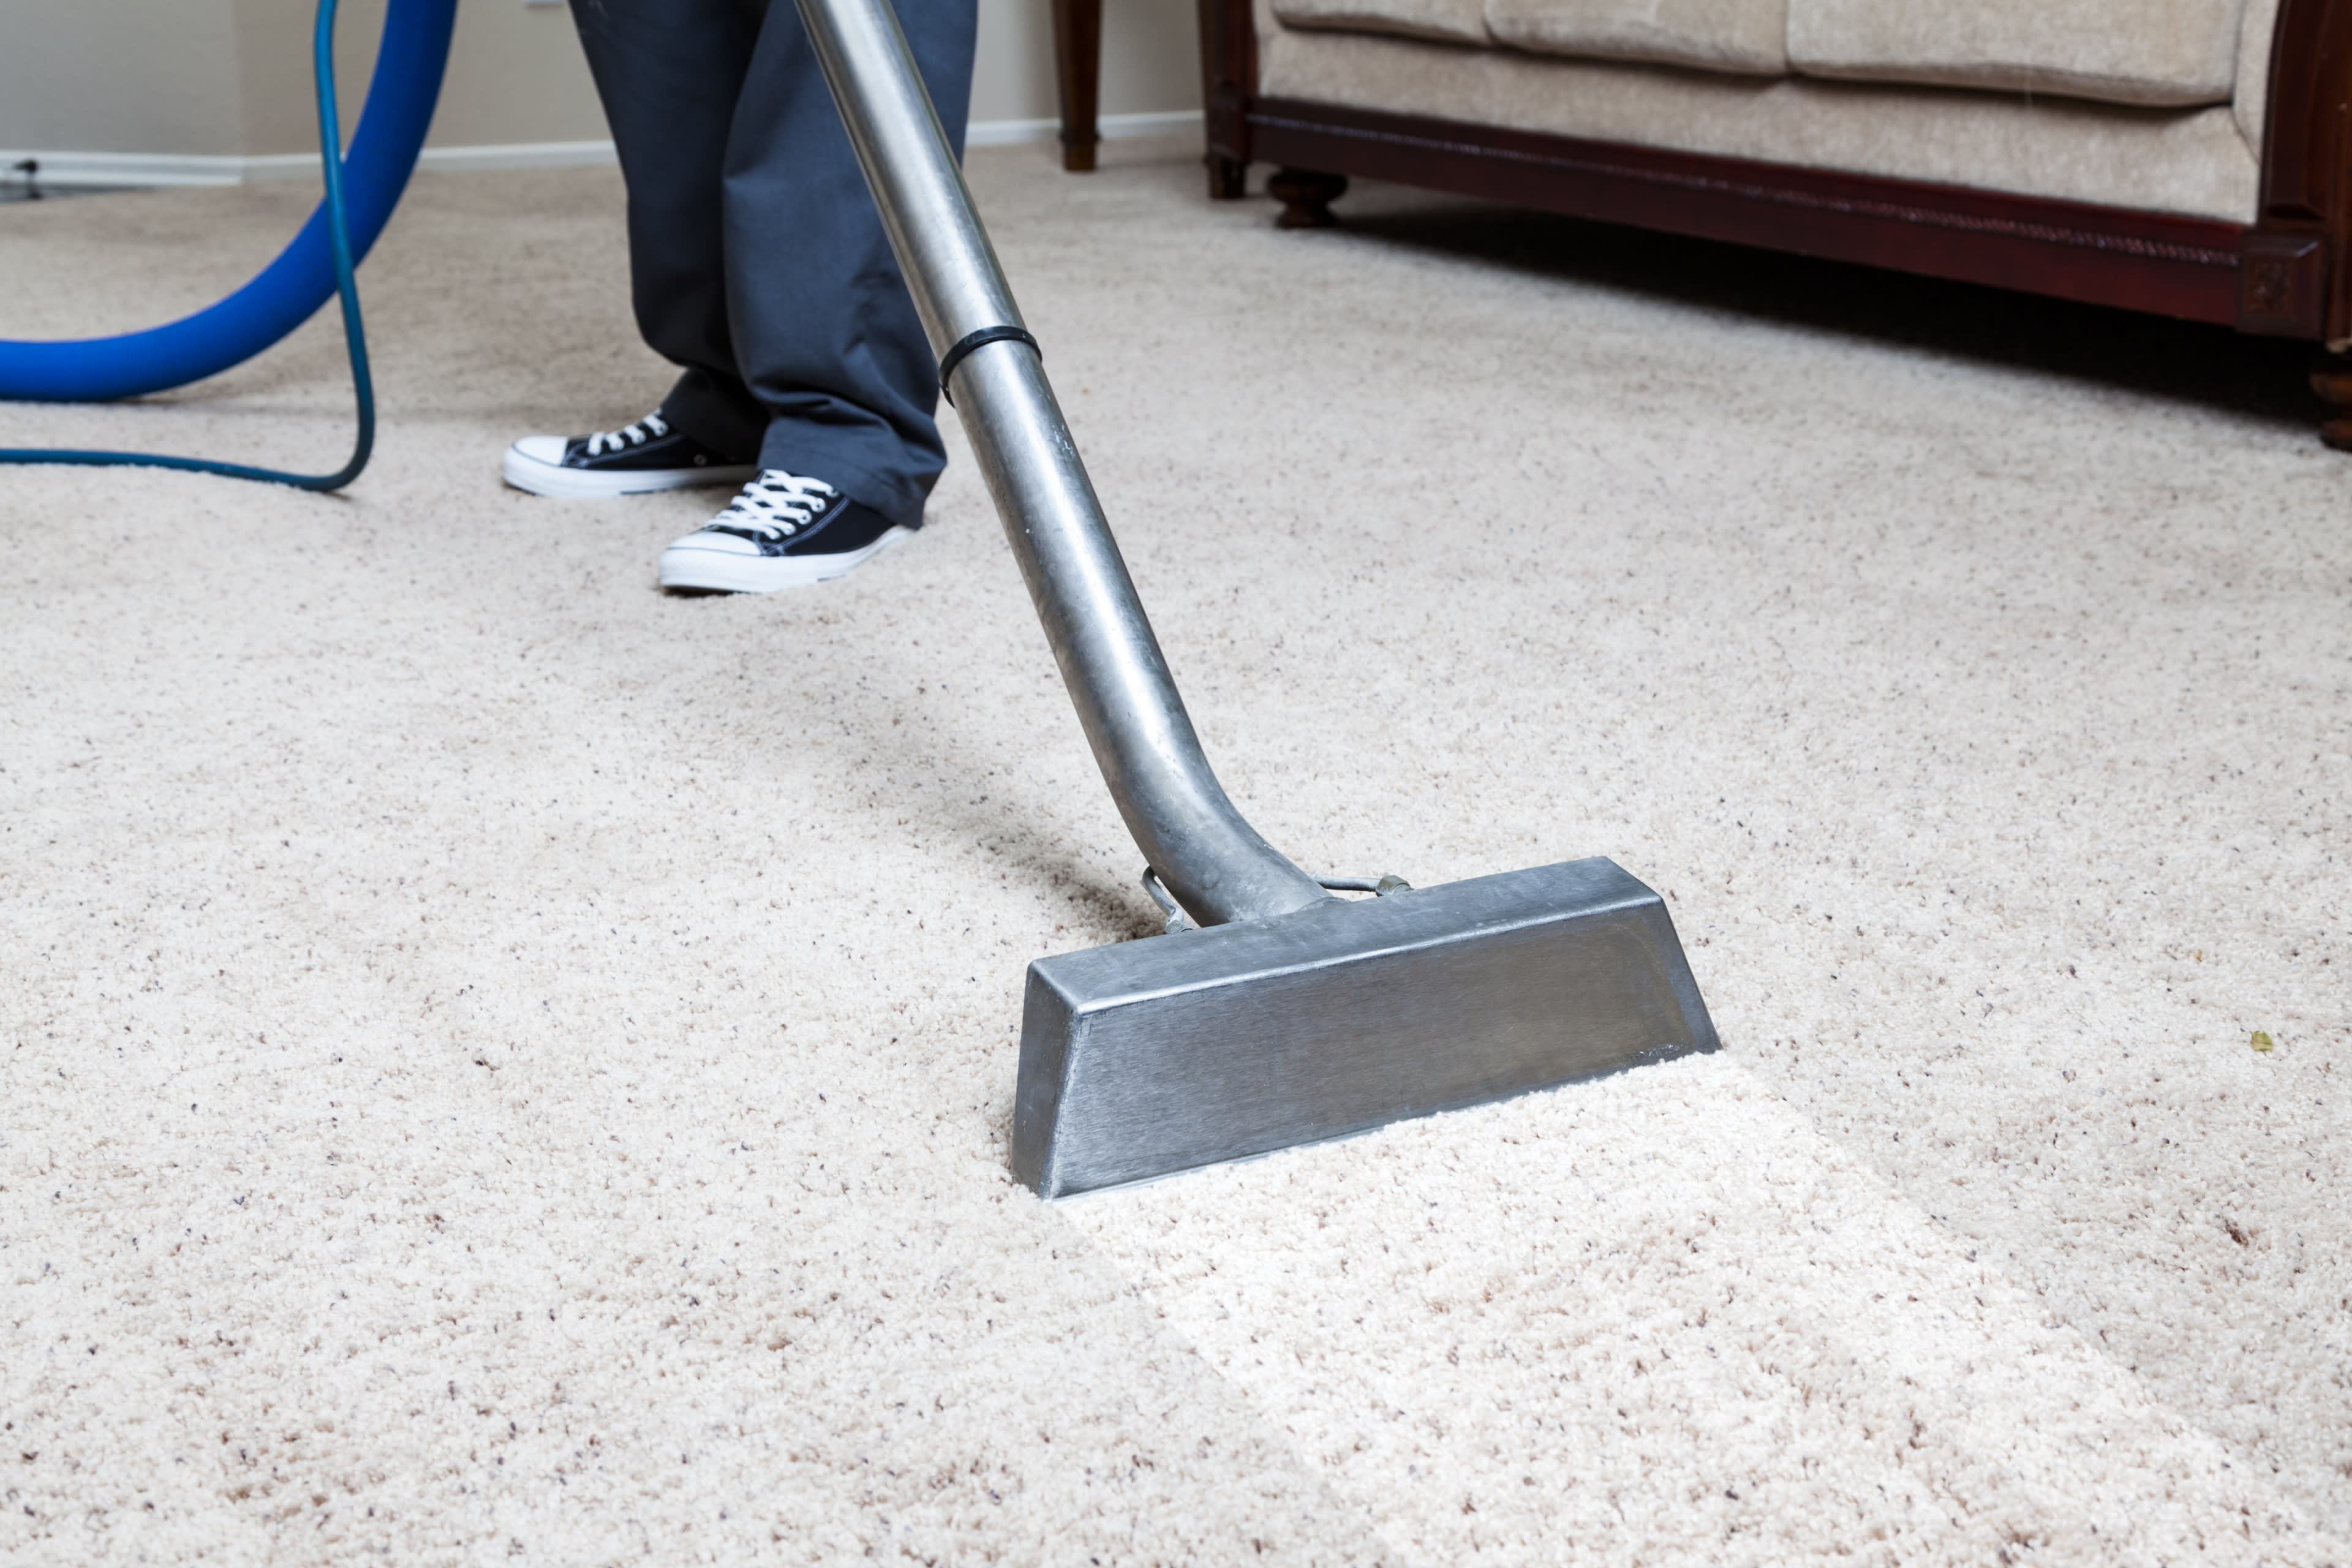 Carpet-Cleaning-181886900_5388x3592